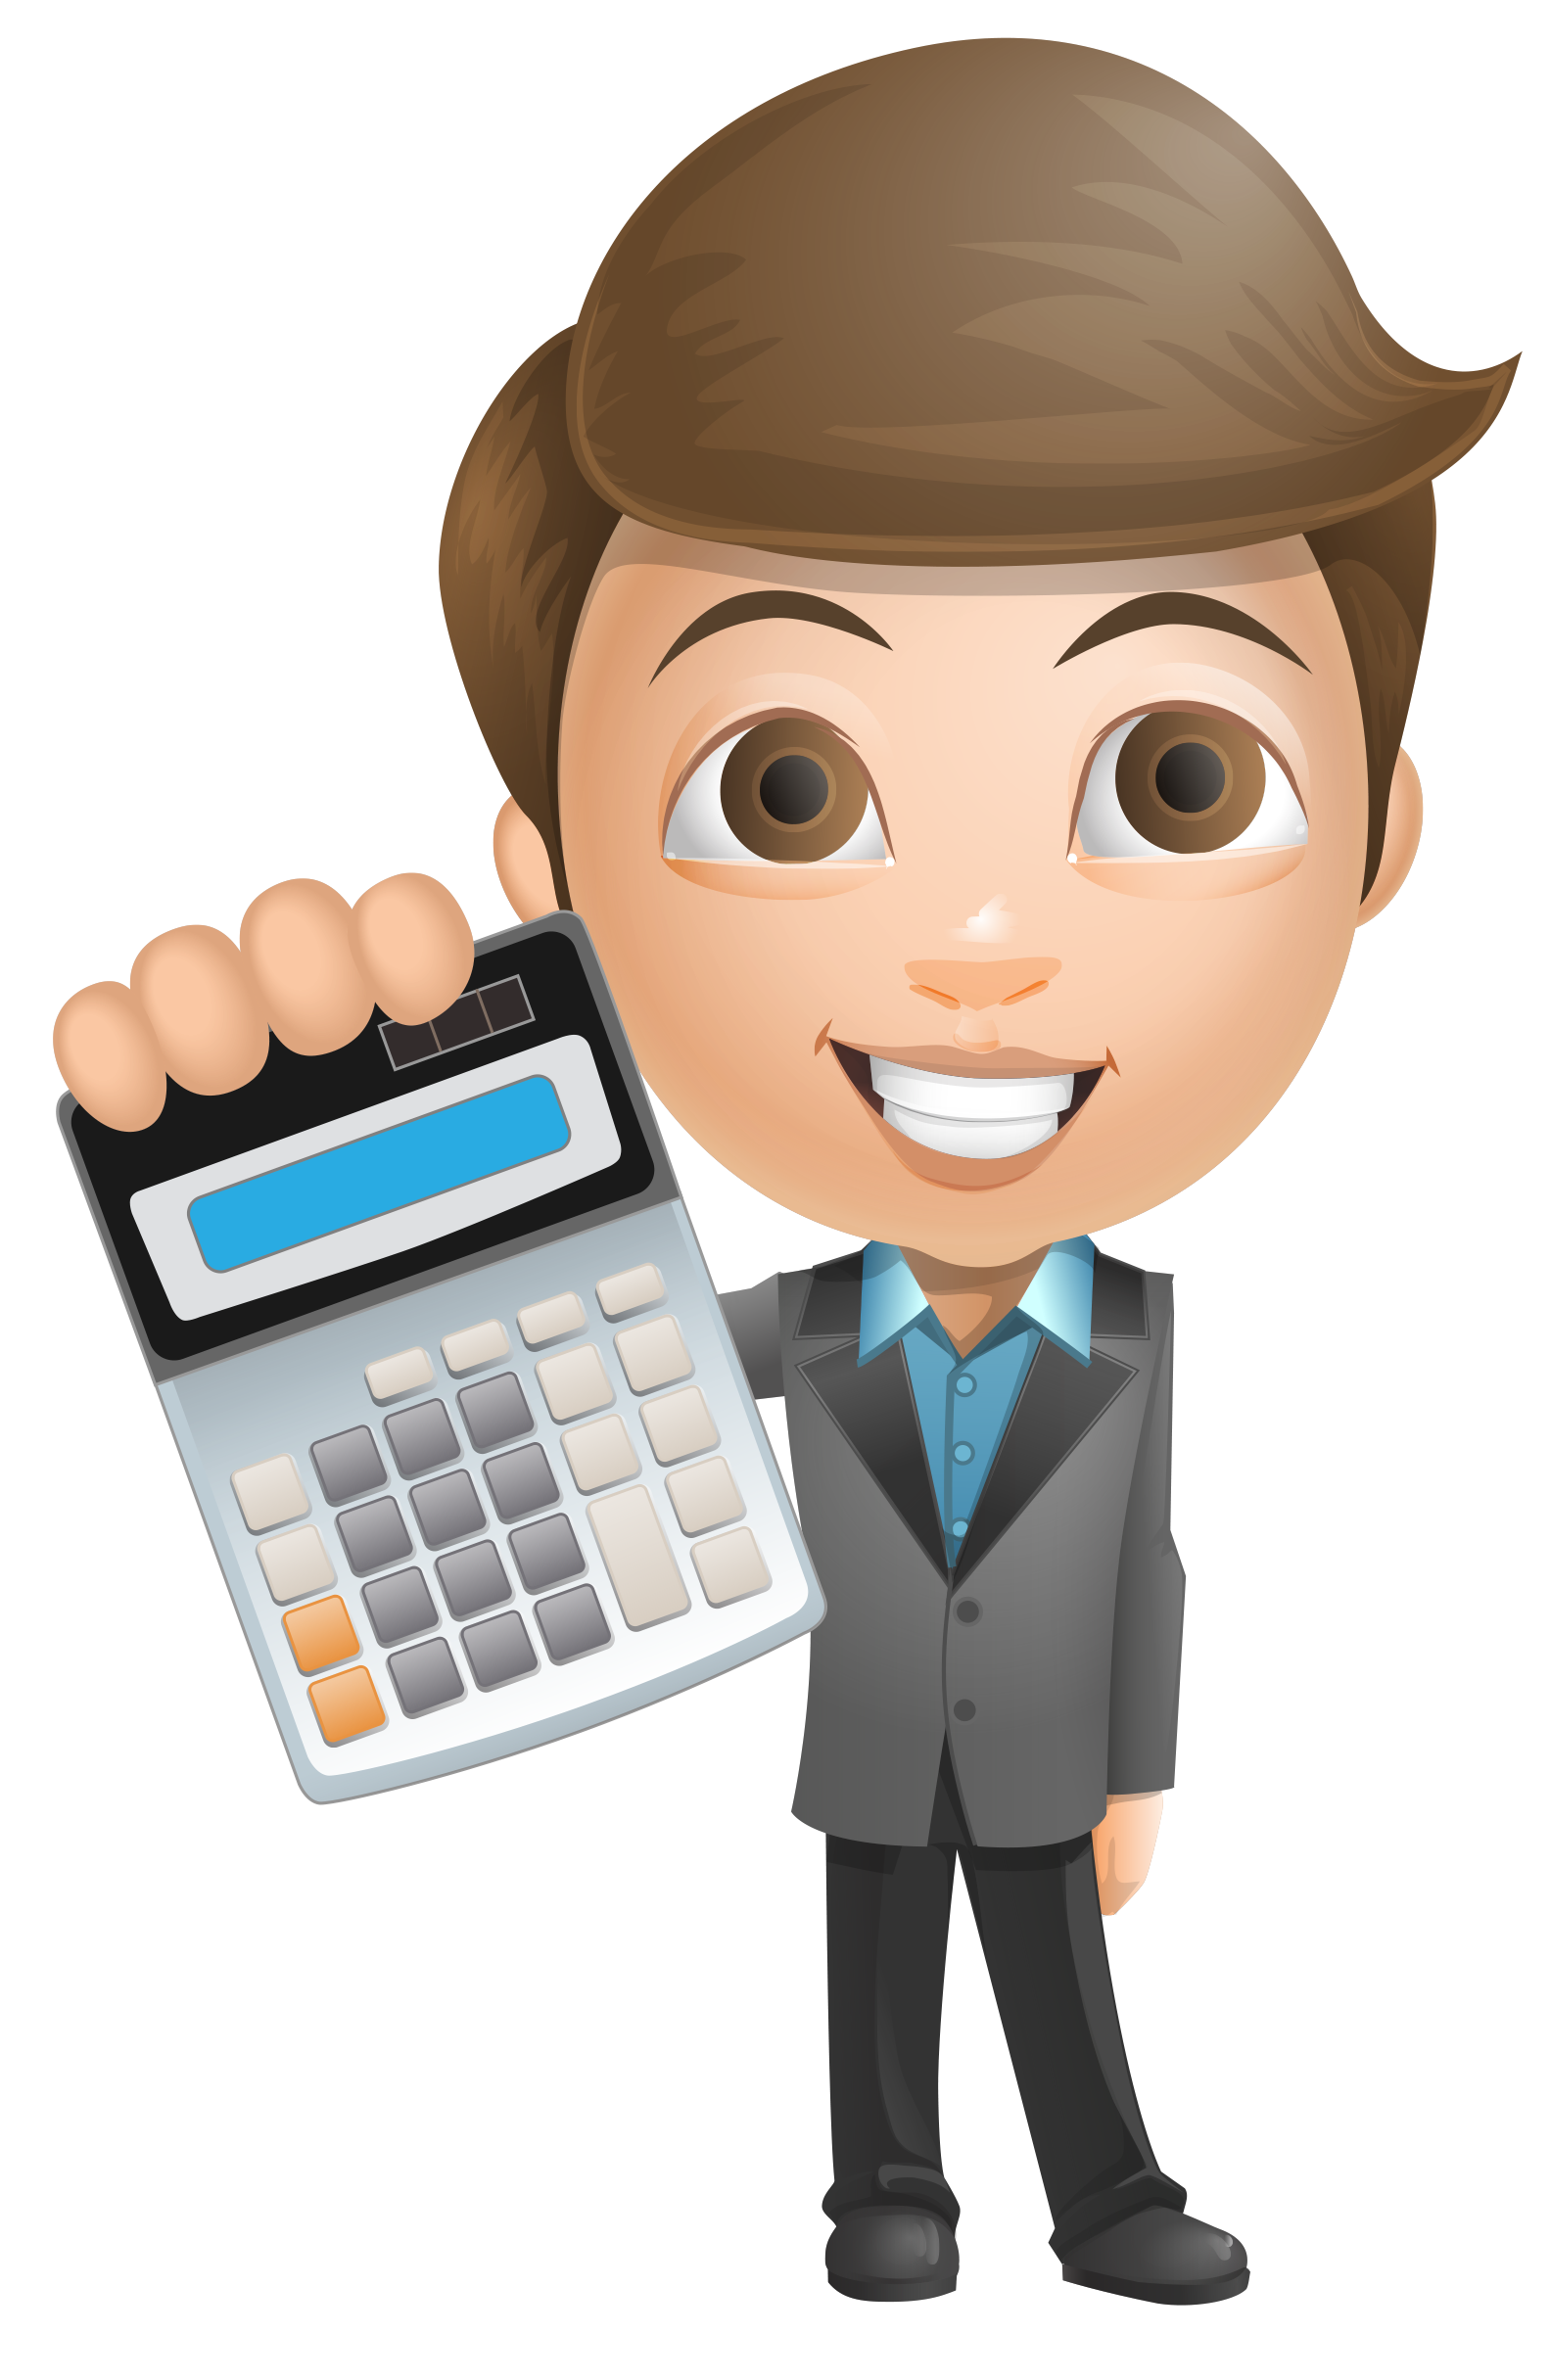 Money and calculator clipart transparent Calculator clipart boy FREE for download on rpelm transparent